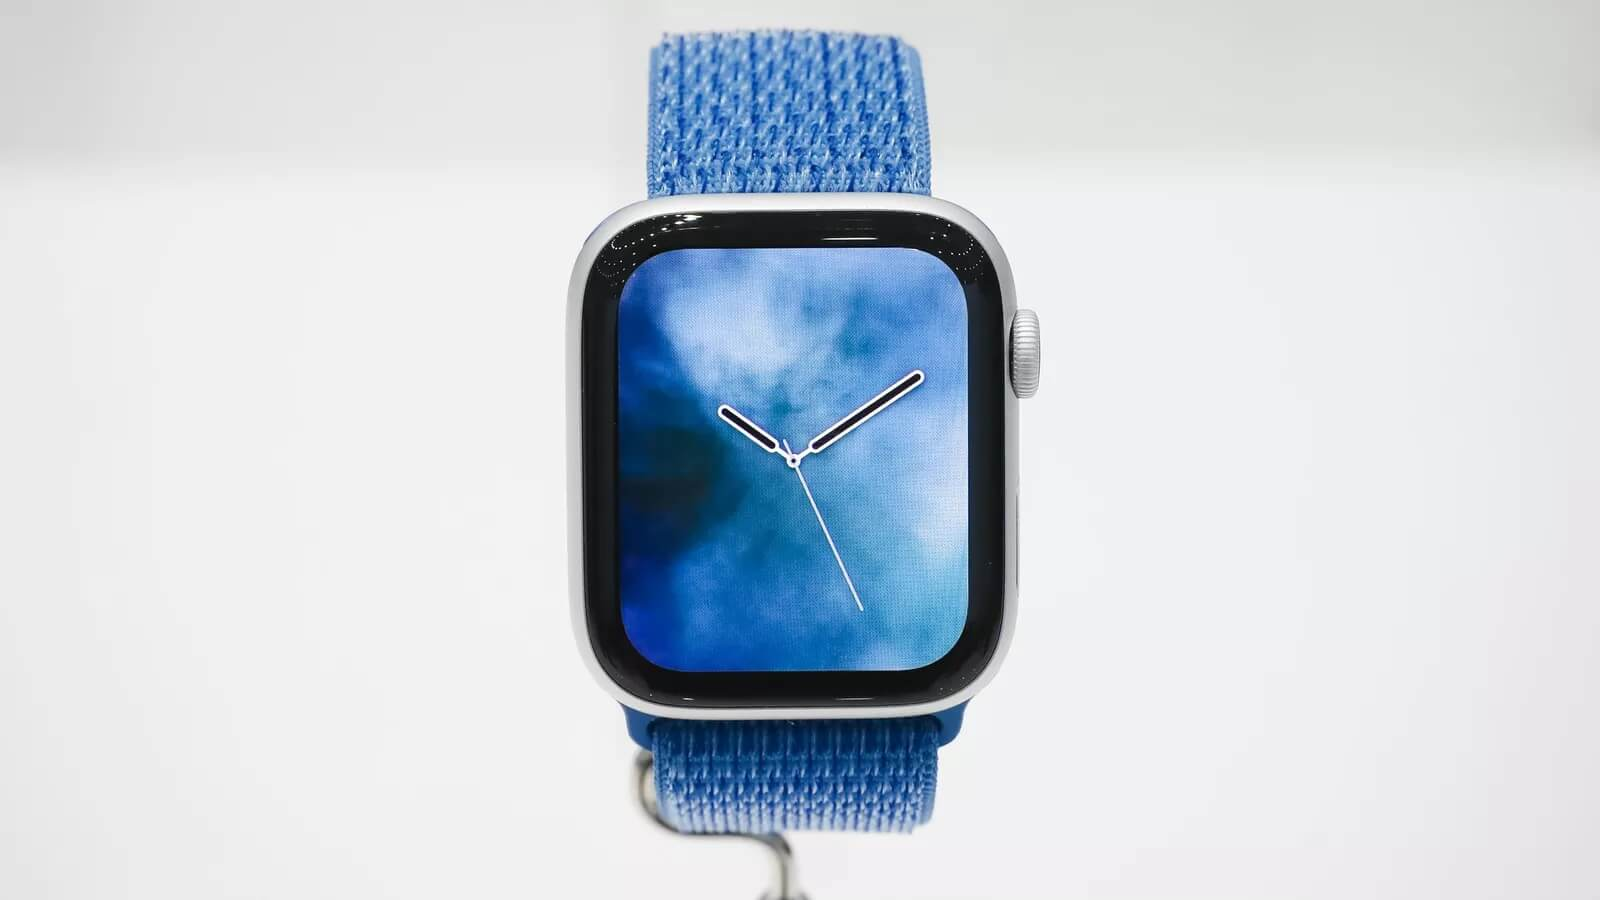 The new Apple Watch update is bricking some users' devices